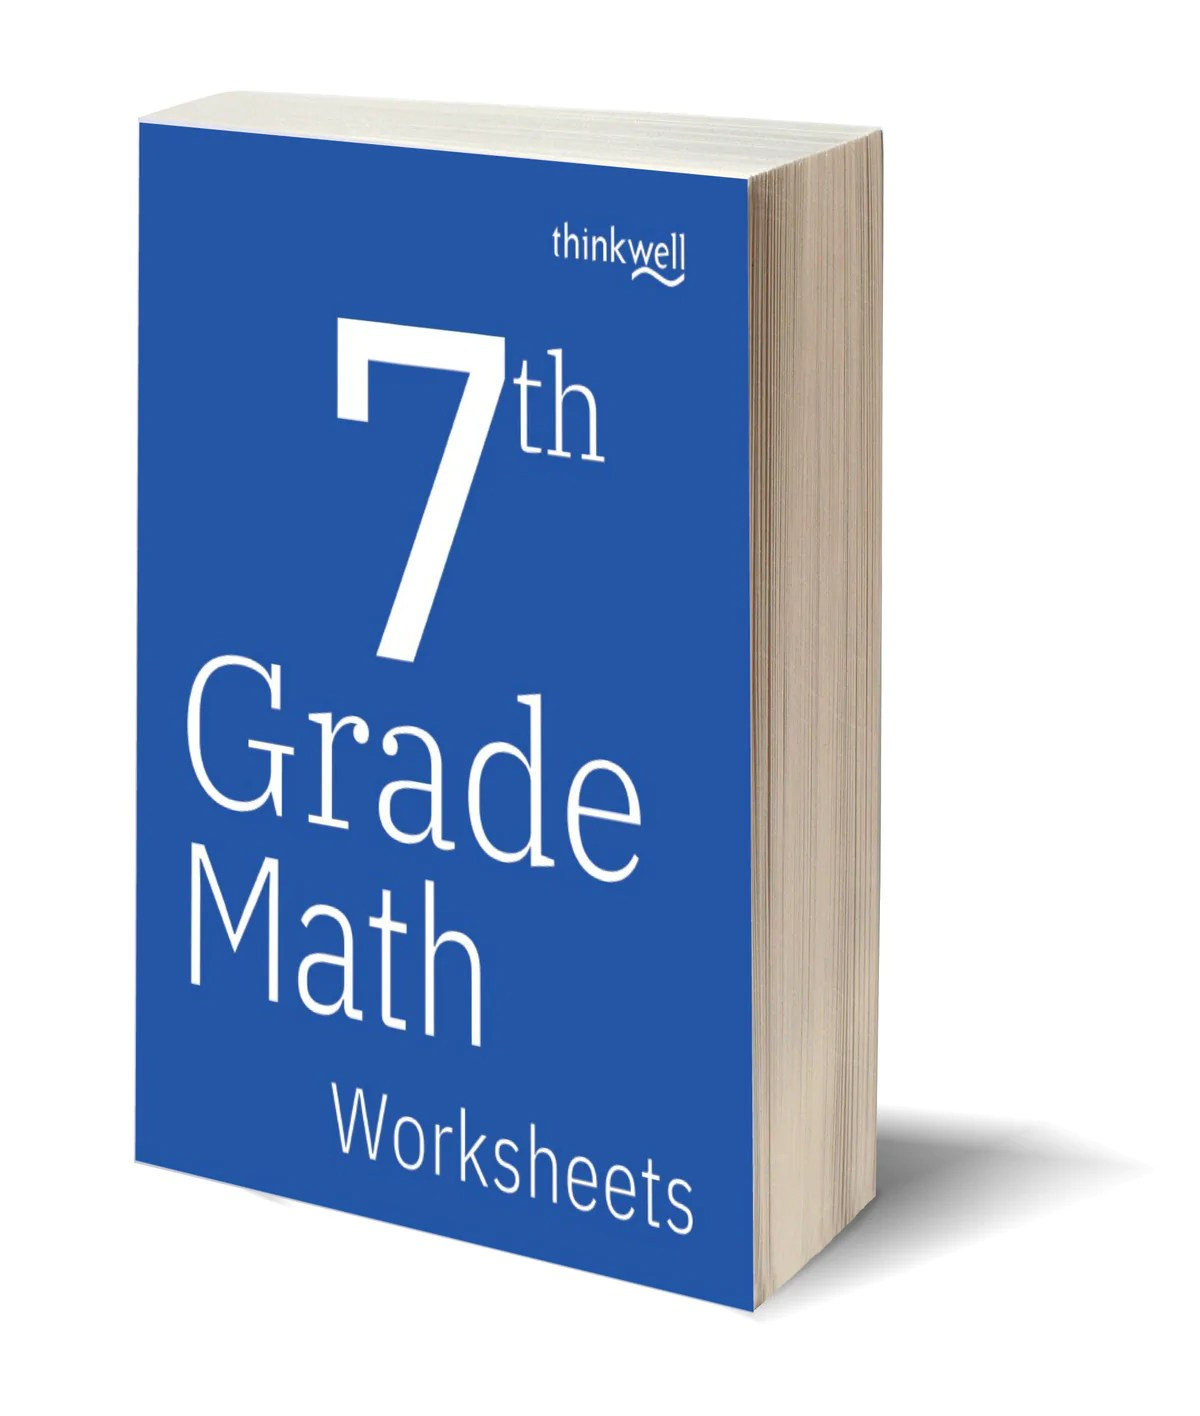 small resolution of 7th Grade Math Worksheets and Answer Keys   Thinkwell   Thinkwell Homeschool